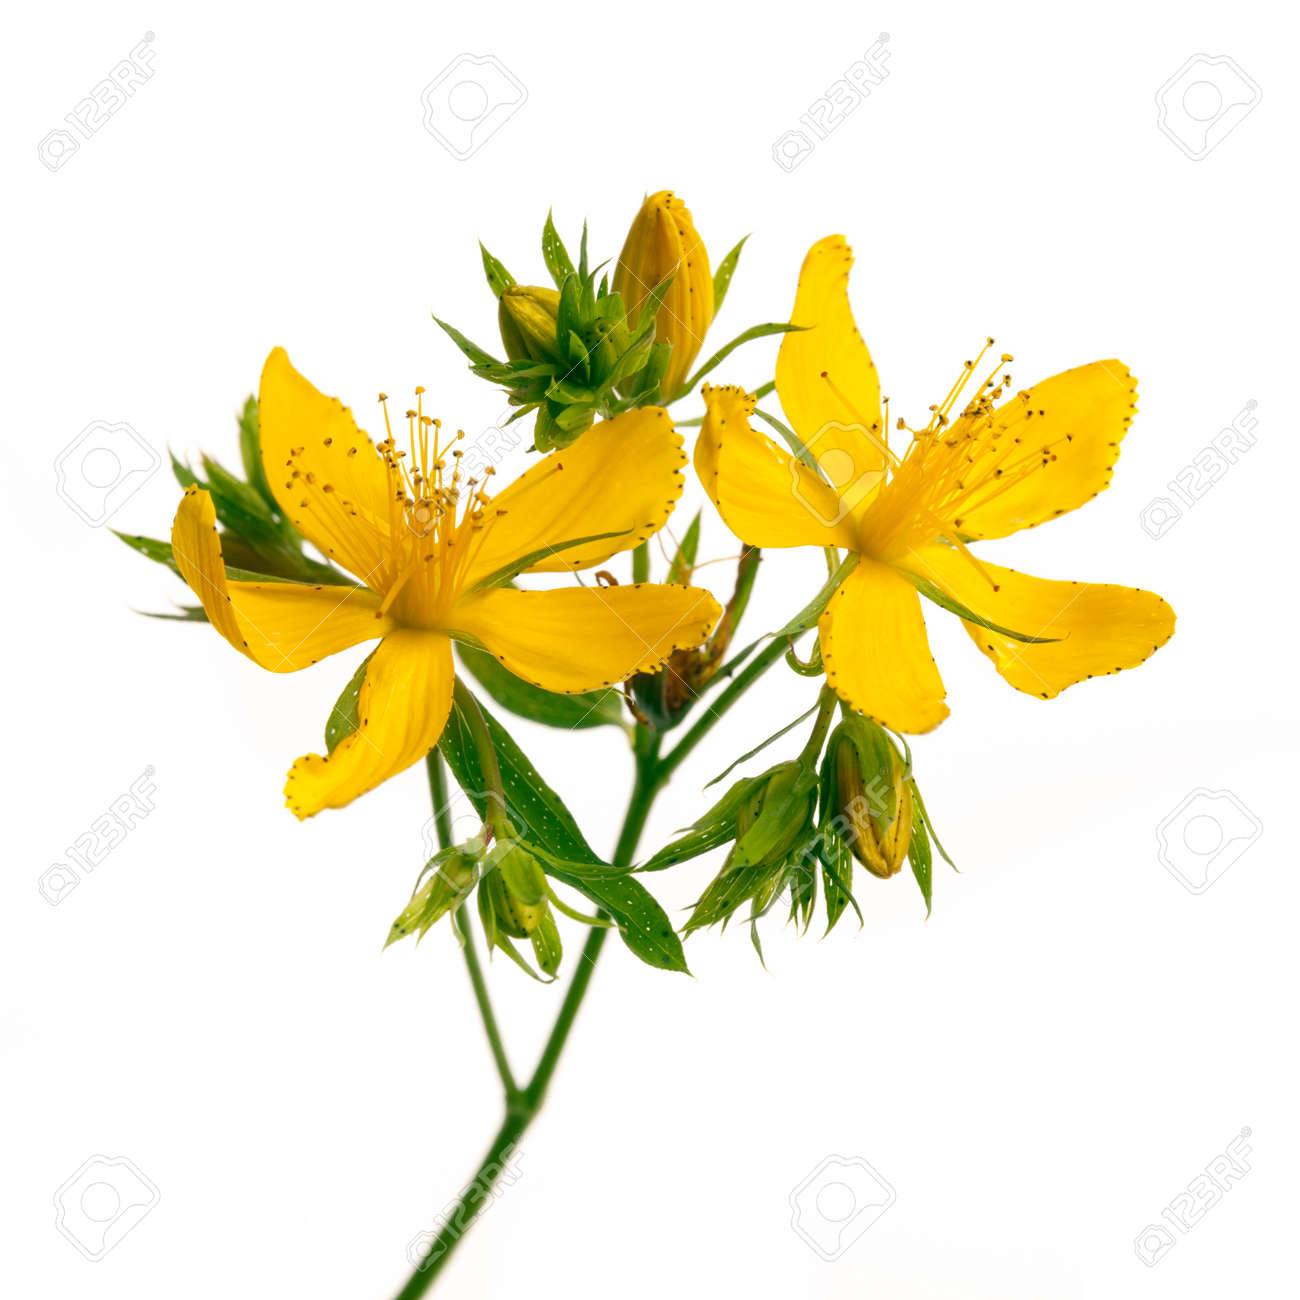 Fresh Medicinal Plant St Johns Wort Branch Closeup With Yellow